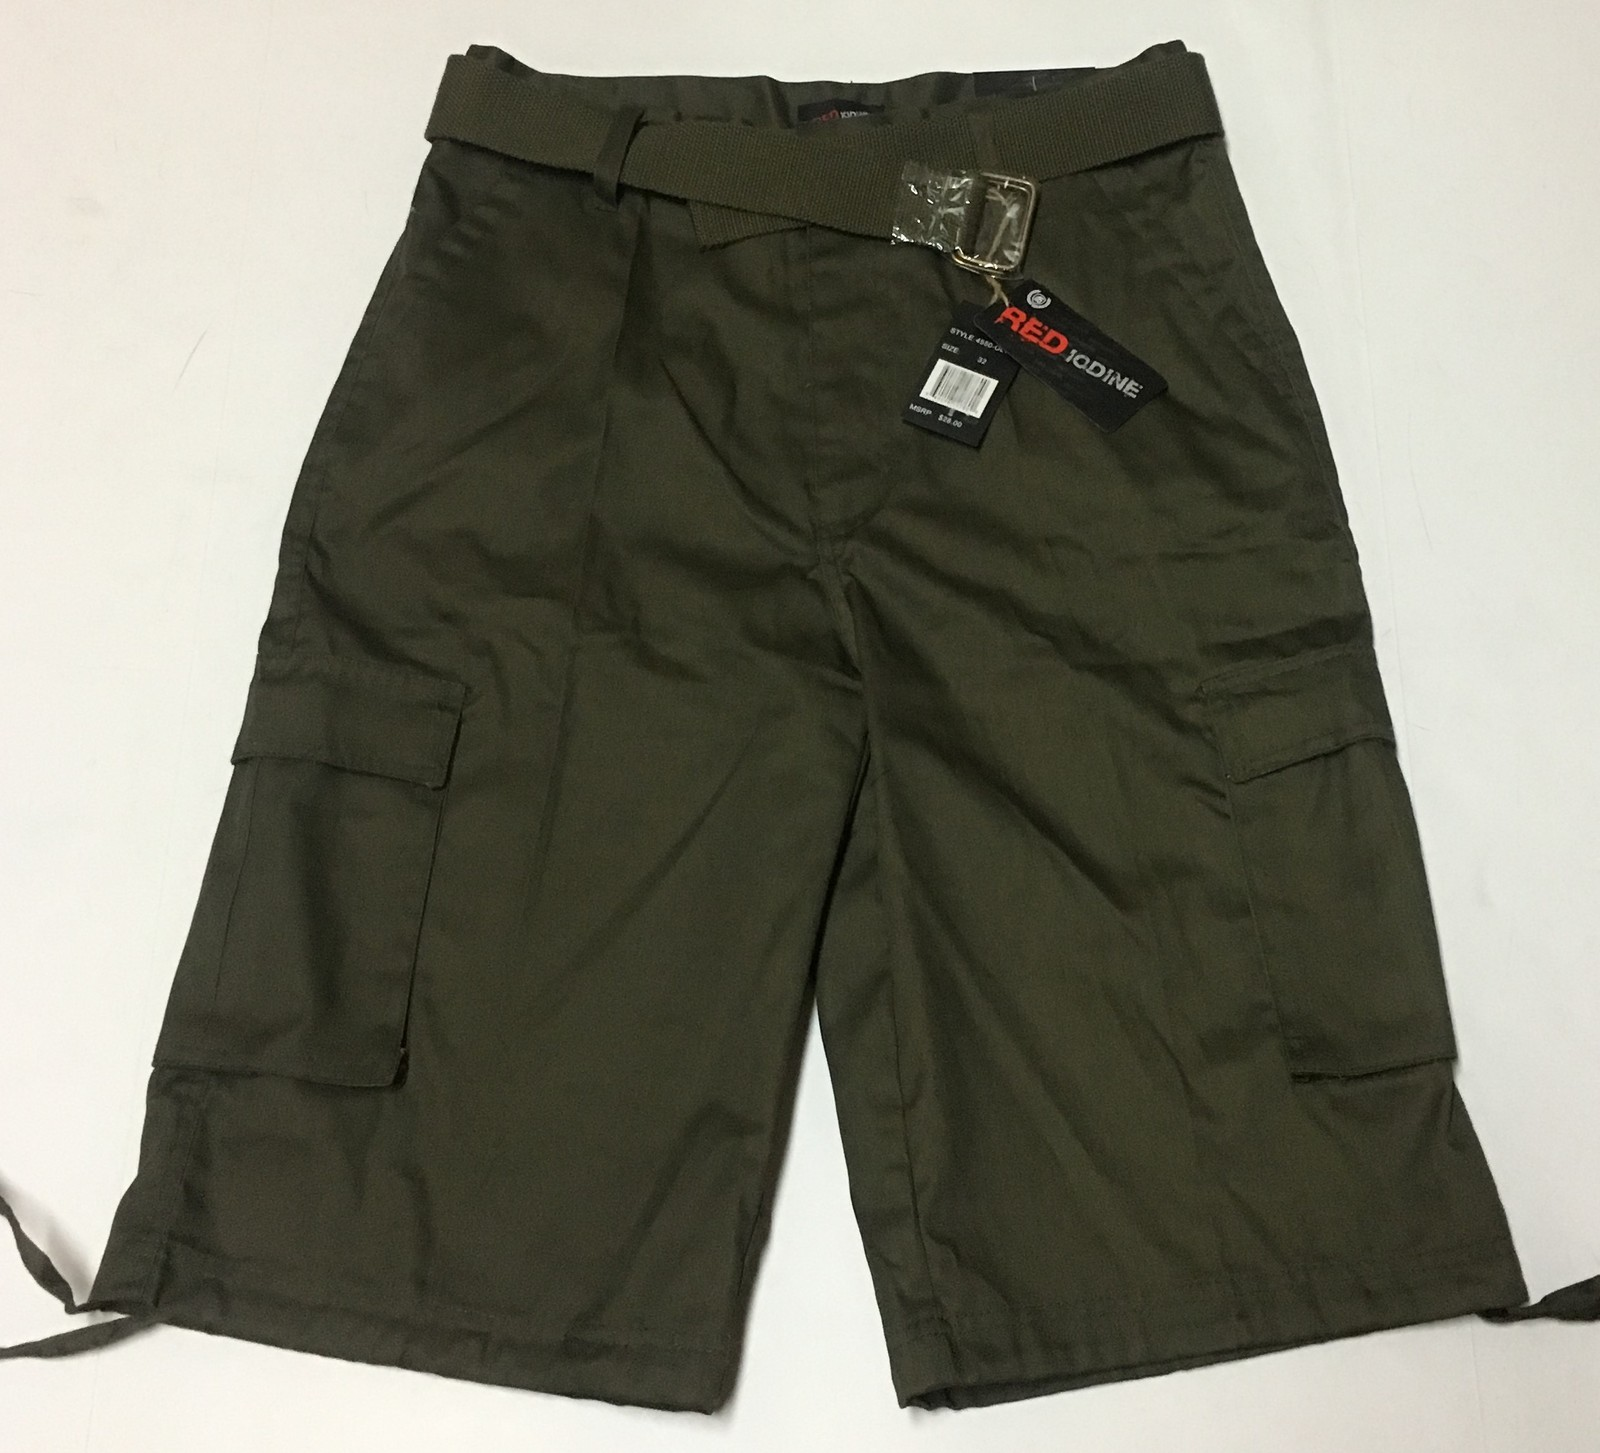 Red Iodine Cargo Board Shorts Army Green Sz 32 Belted NWT